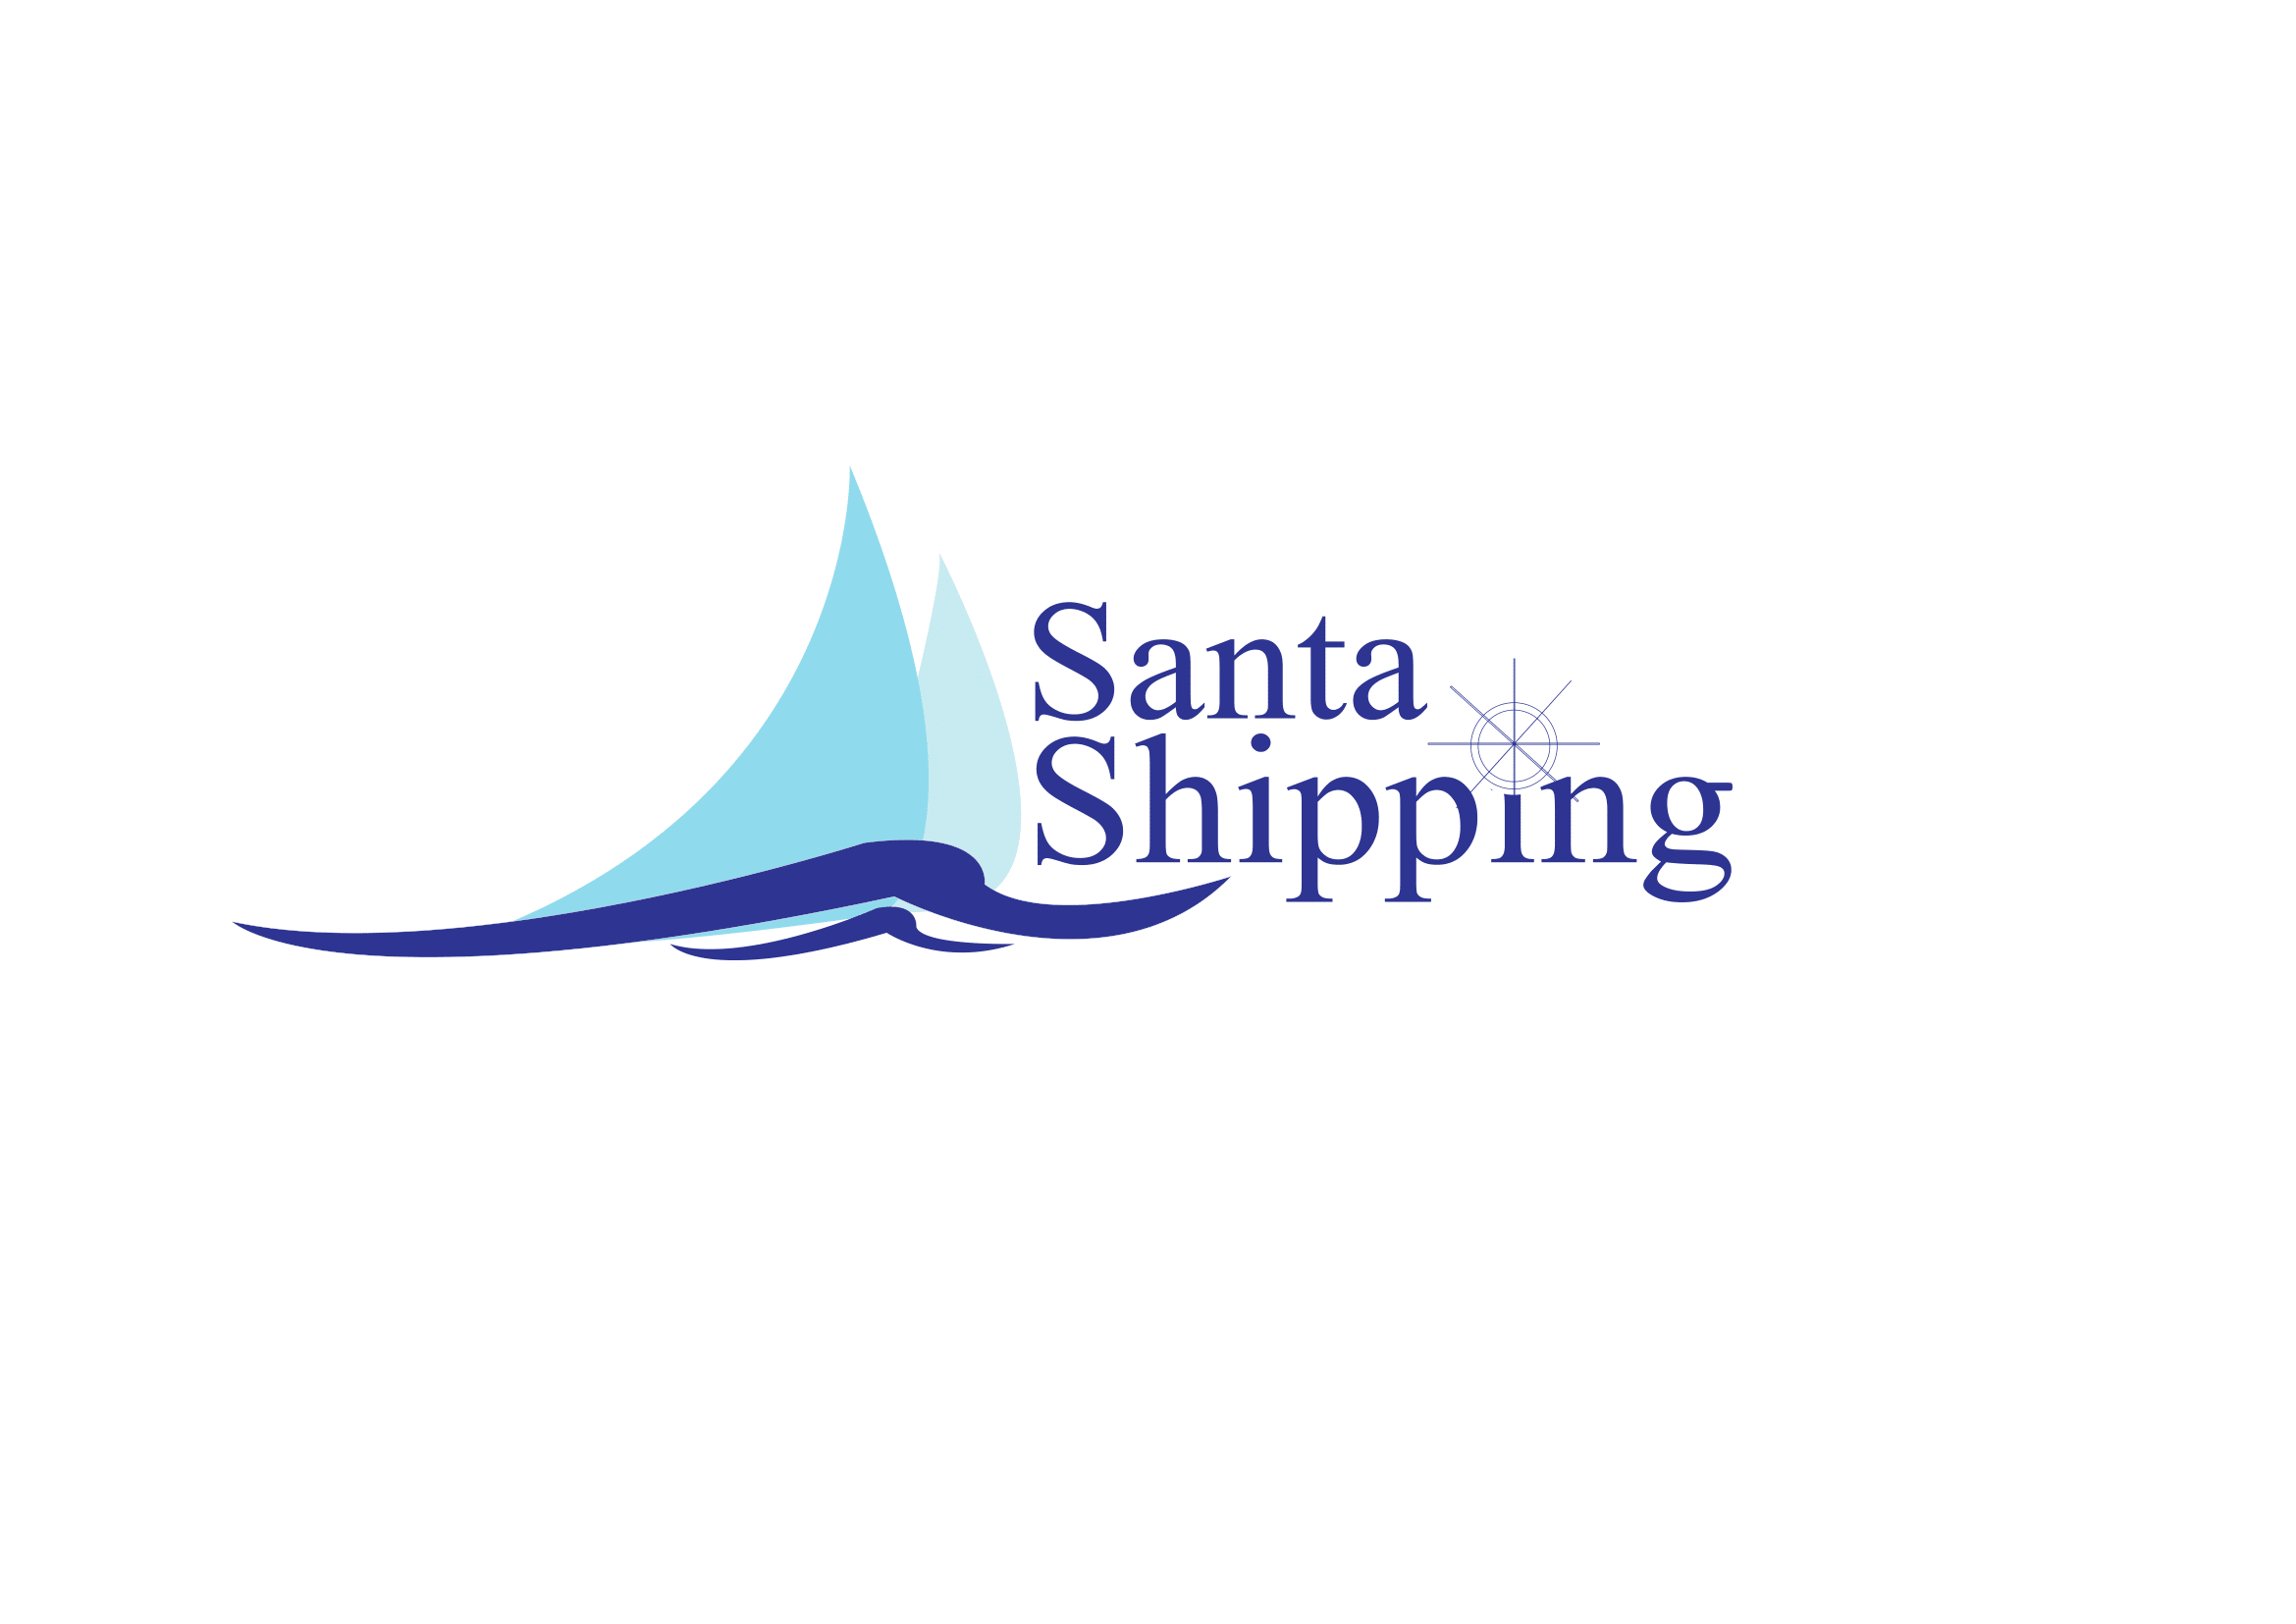 Santa Shipping Agency Ltd.